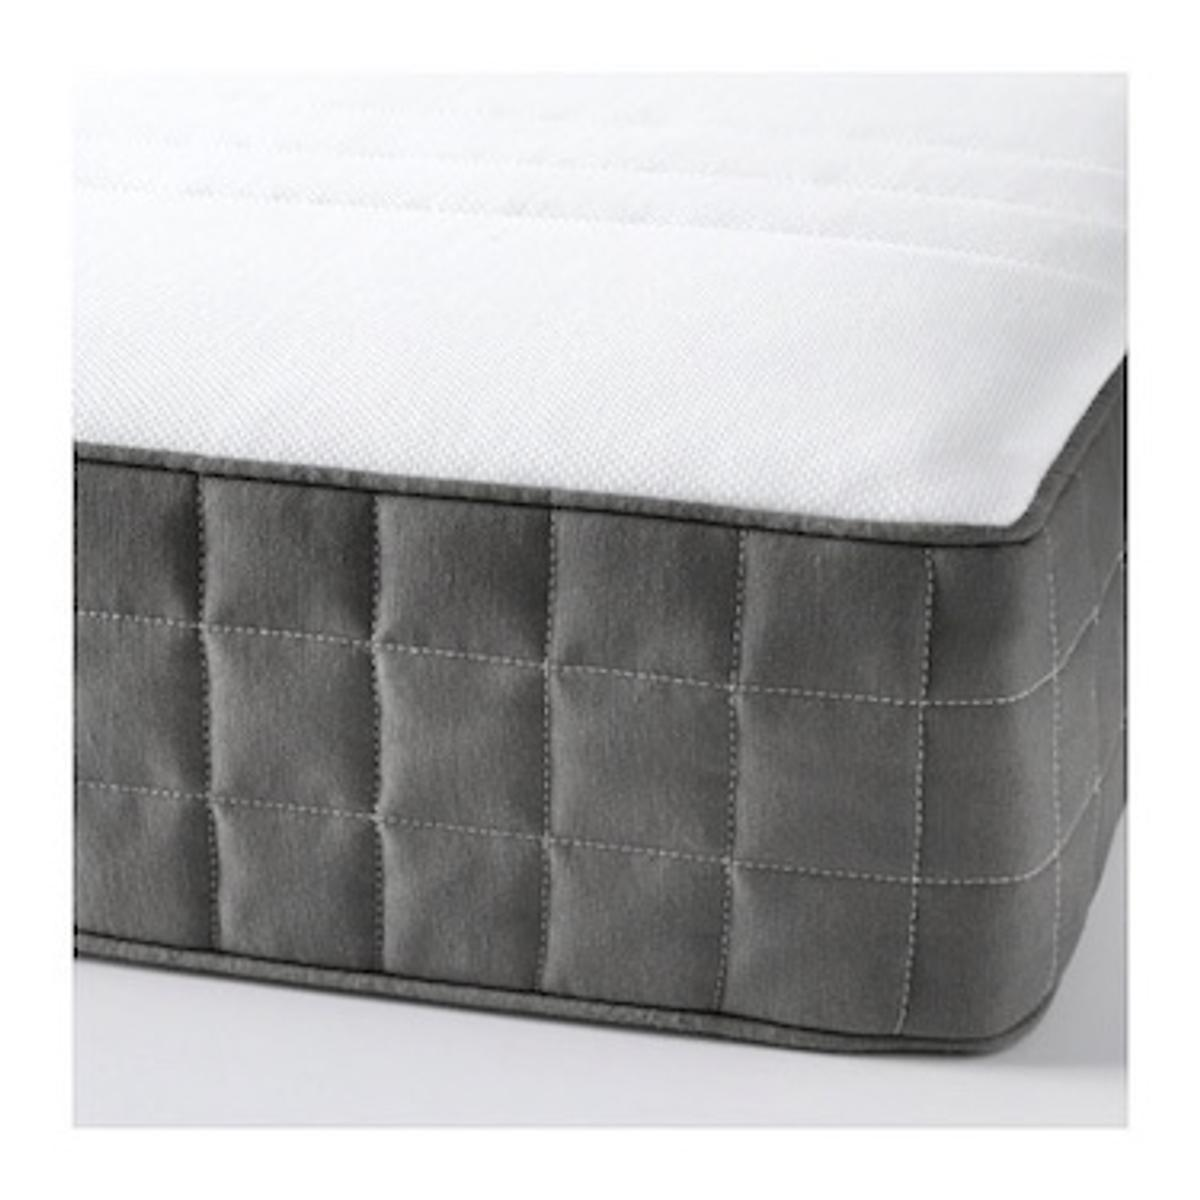 Ikea Hovag Mattress Ikea Hovag Pocket Sprung Double Mattress